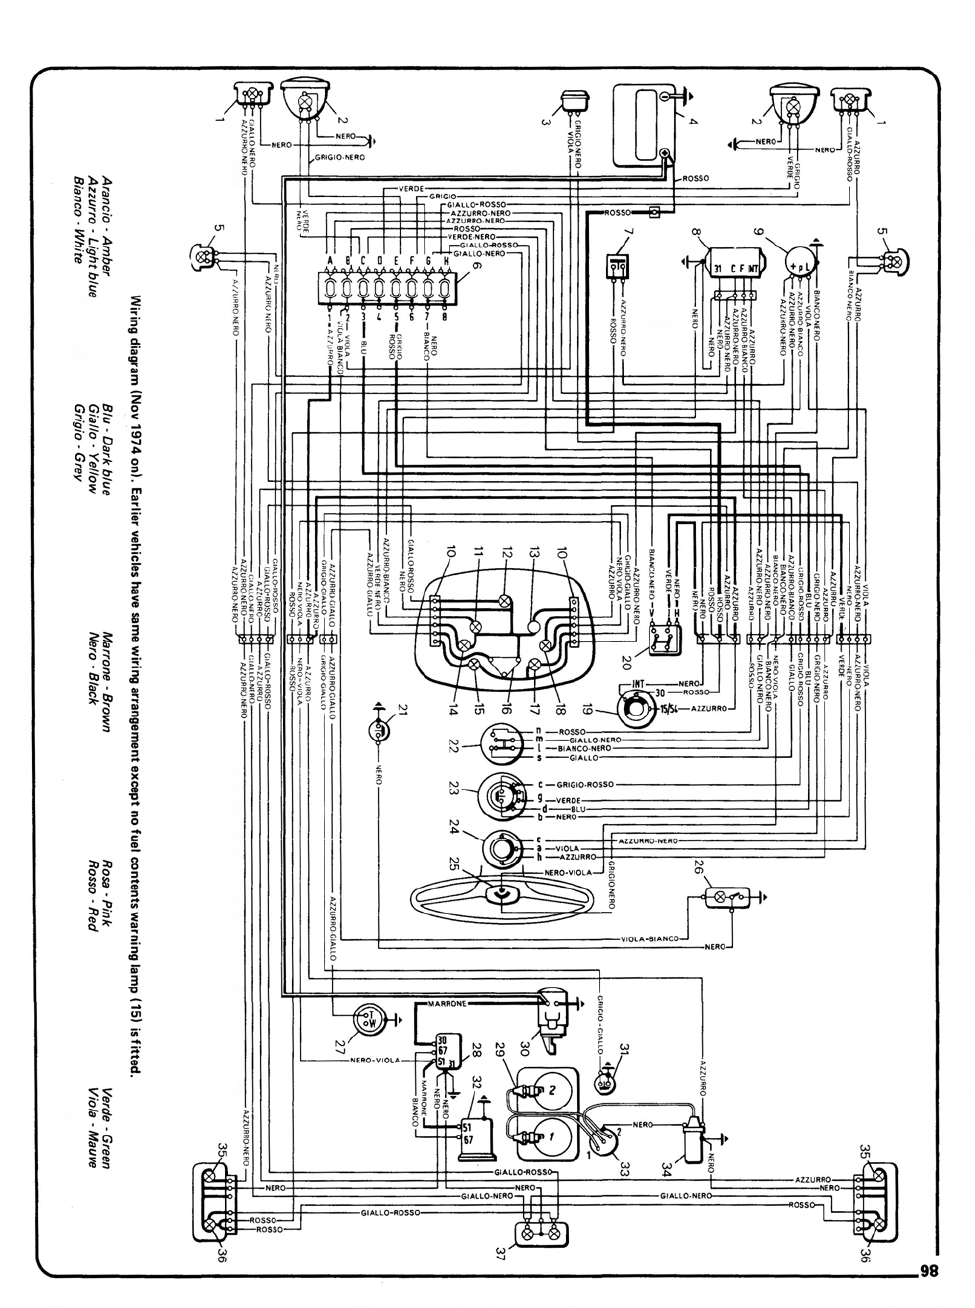 Fiat Wiring Diagram : Fiat generator wiring diagram auto parts catalog